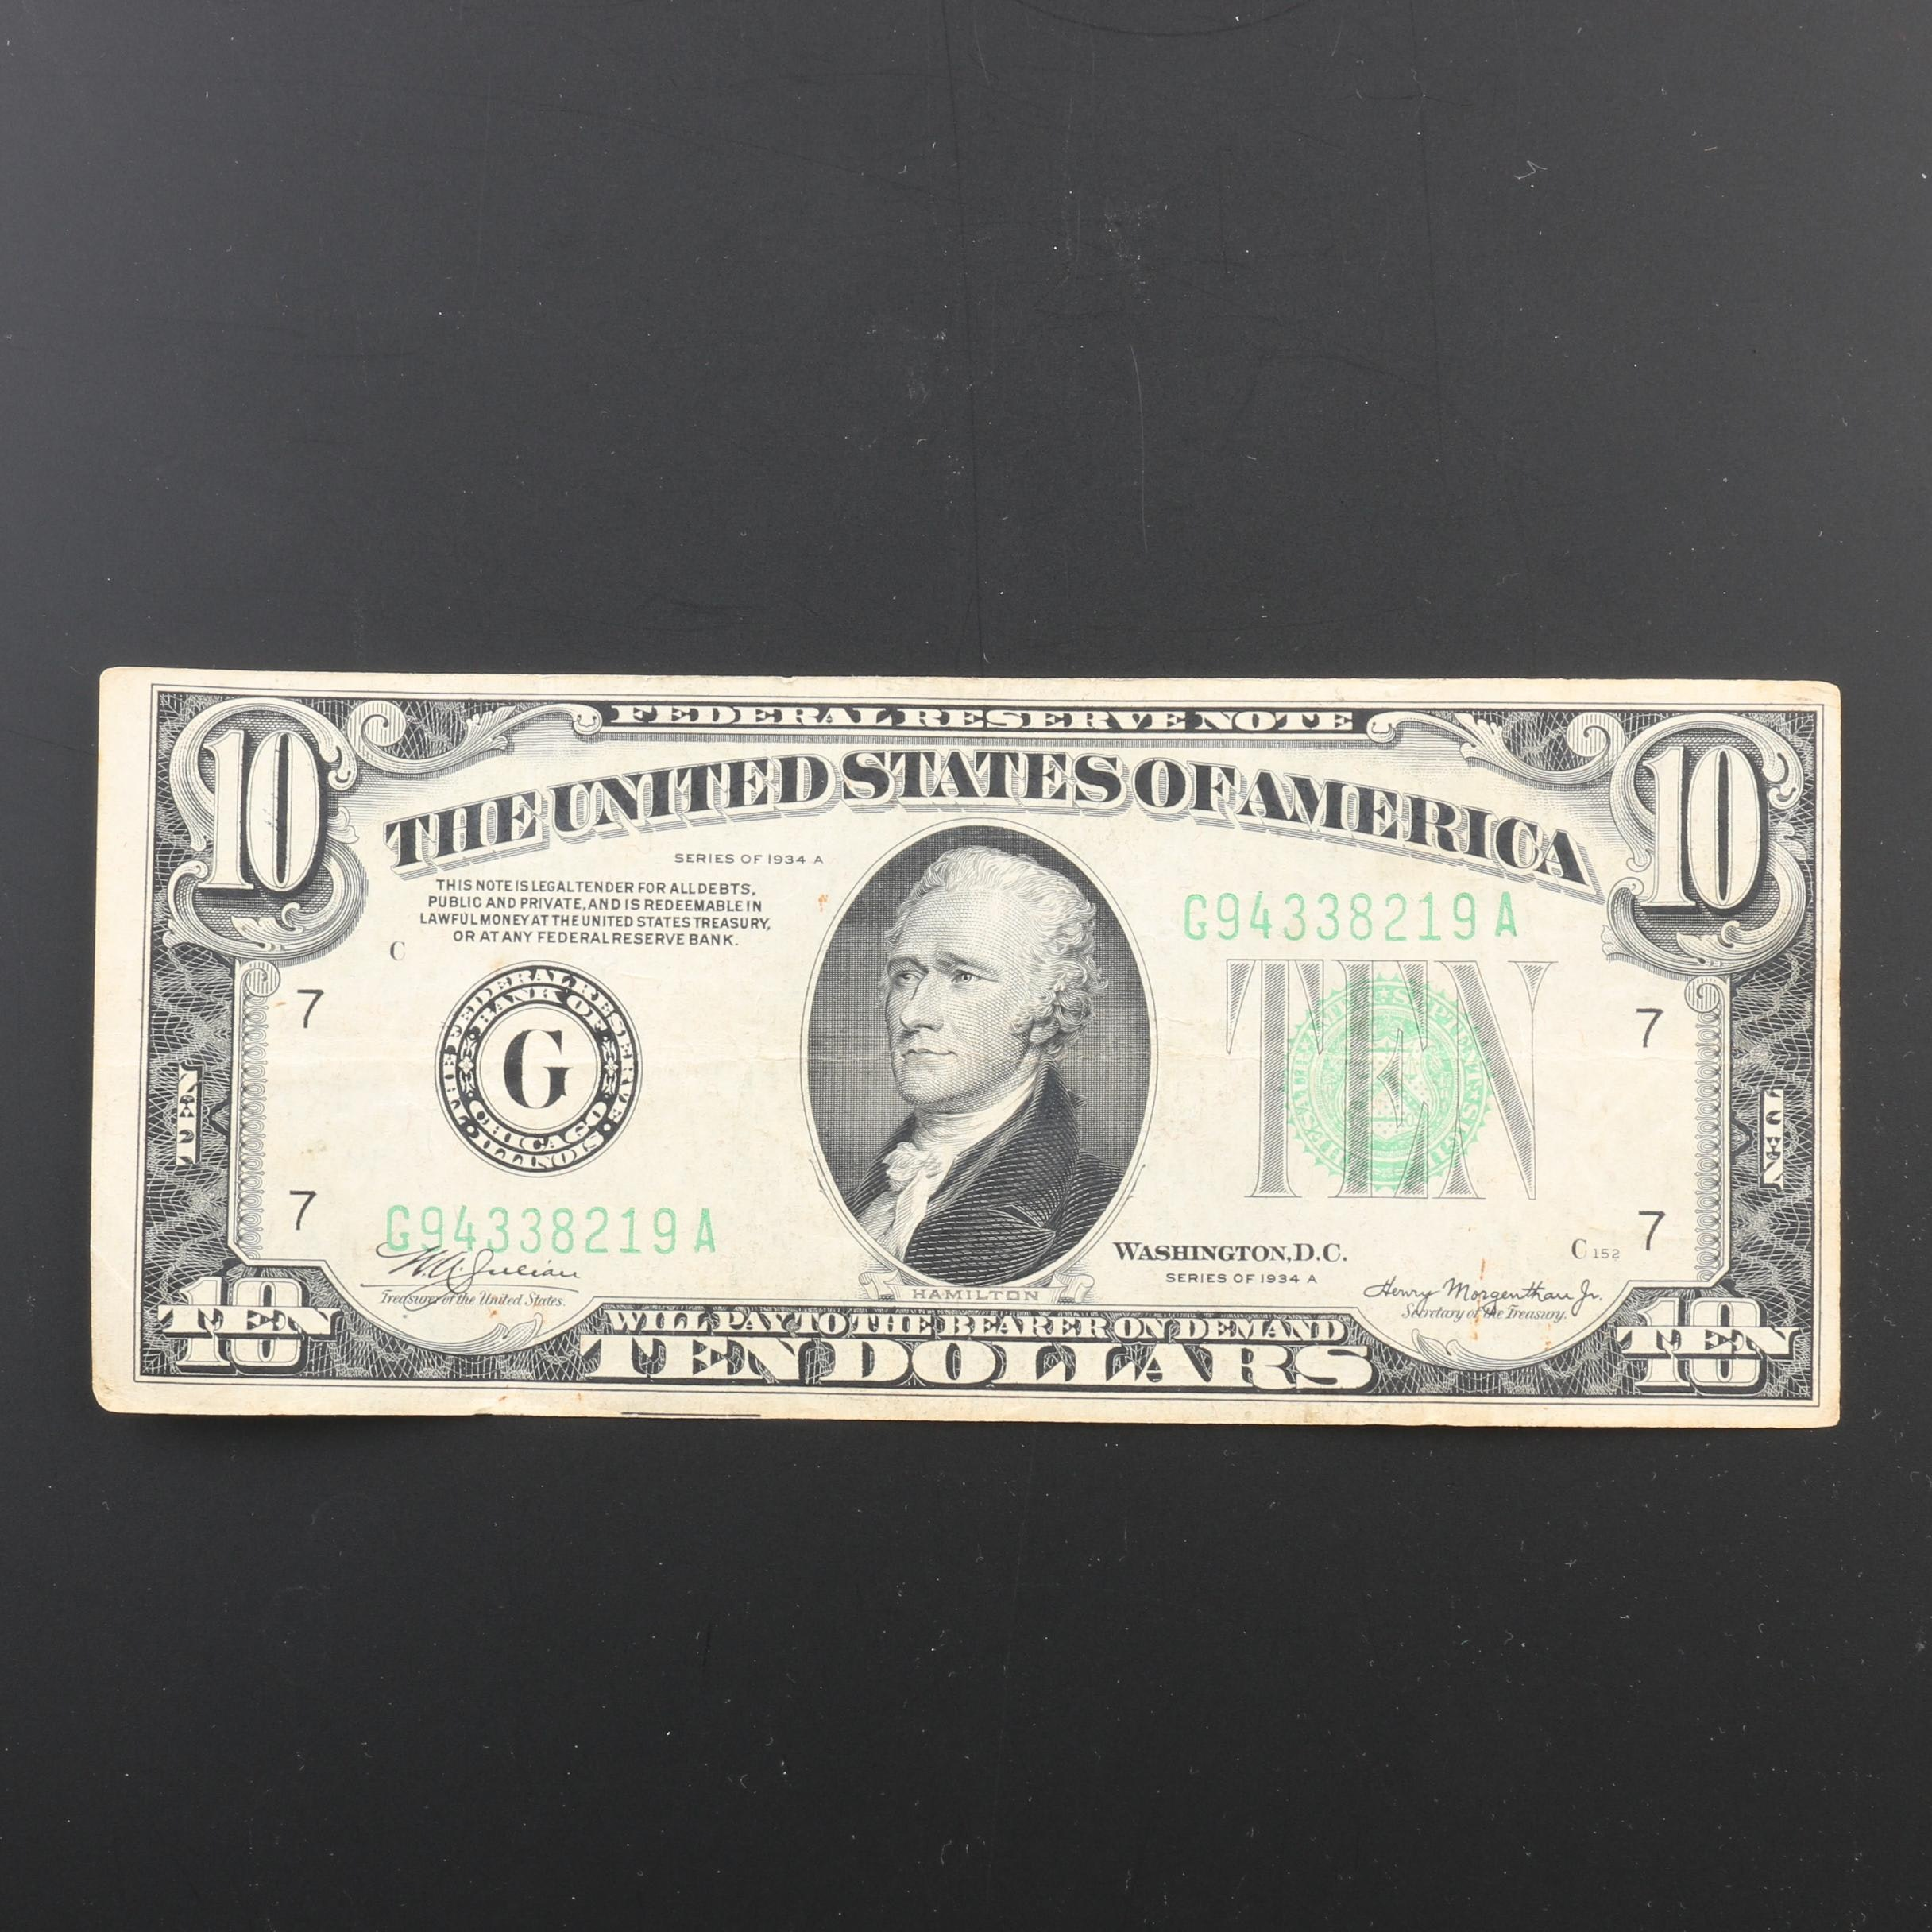 Series of 1934-A U.S. $10 Federal Reserve Note